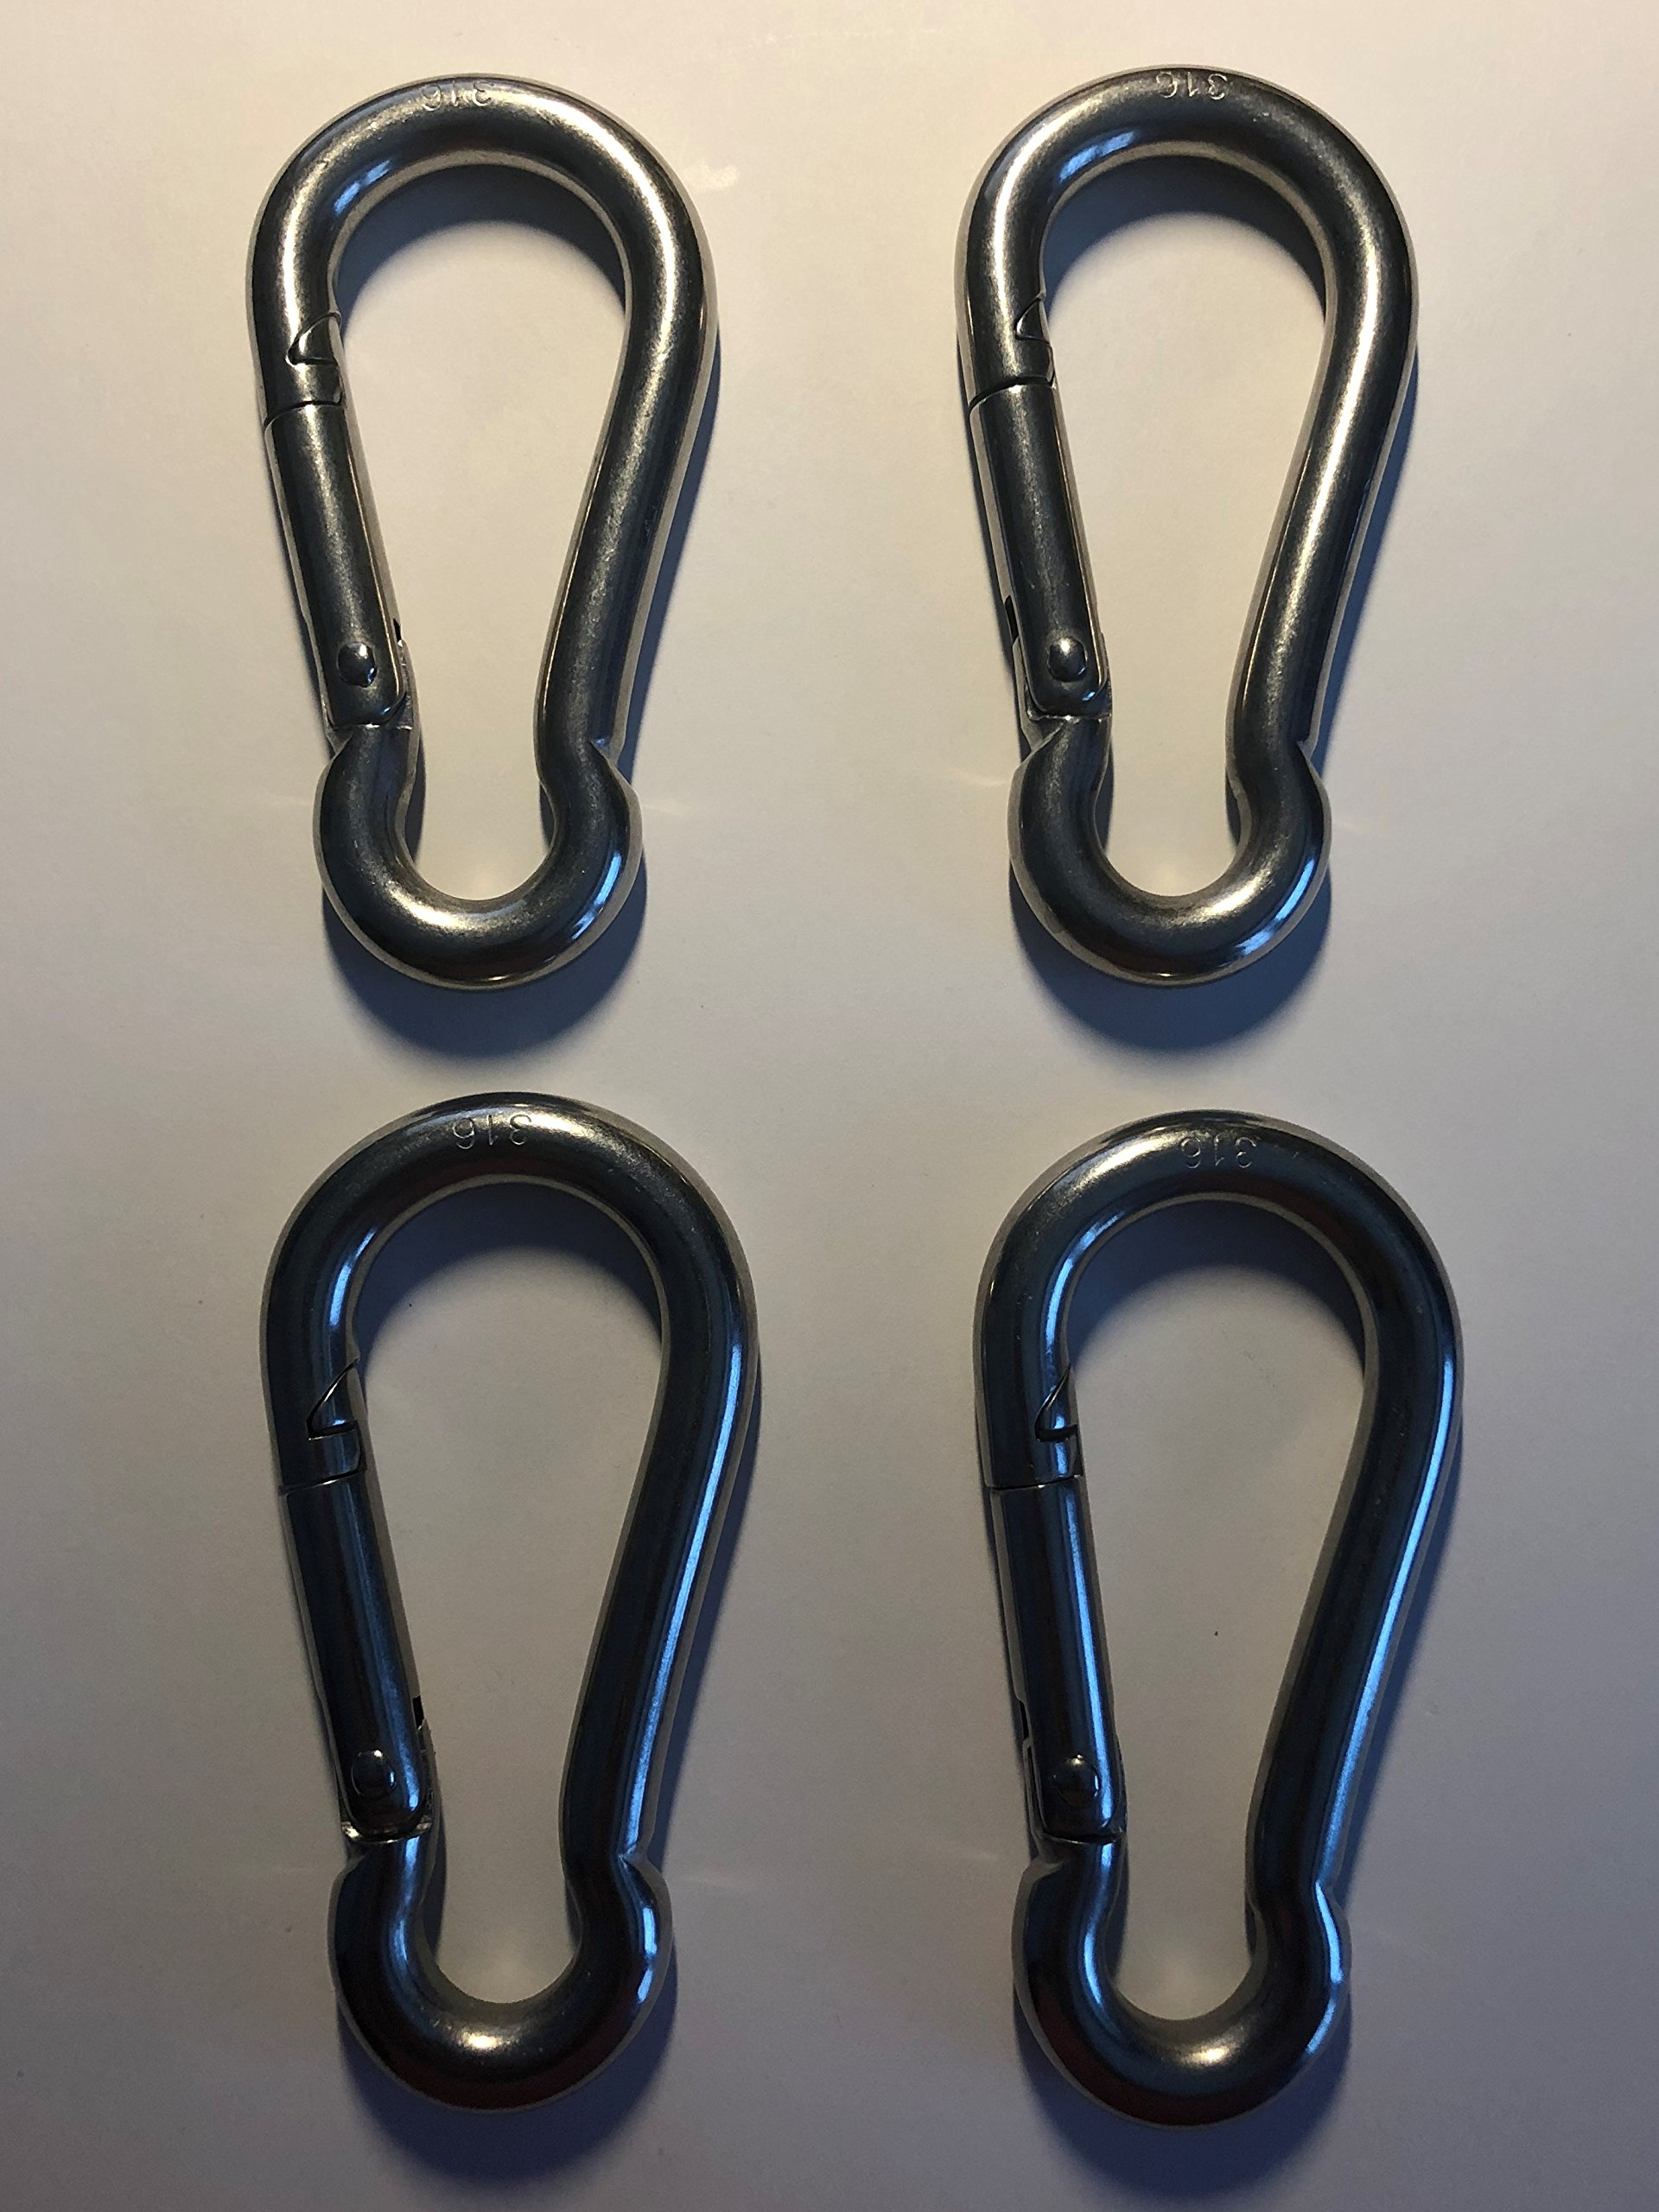 4 Pieces Stainless Steel 316 Spring Hook No Eye Carabiner 3/8'' (10mm) Marine Grade